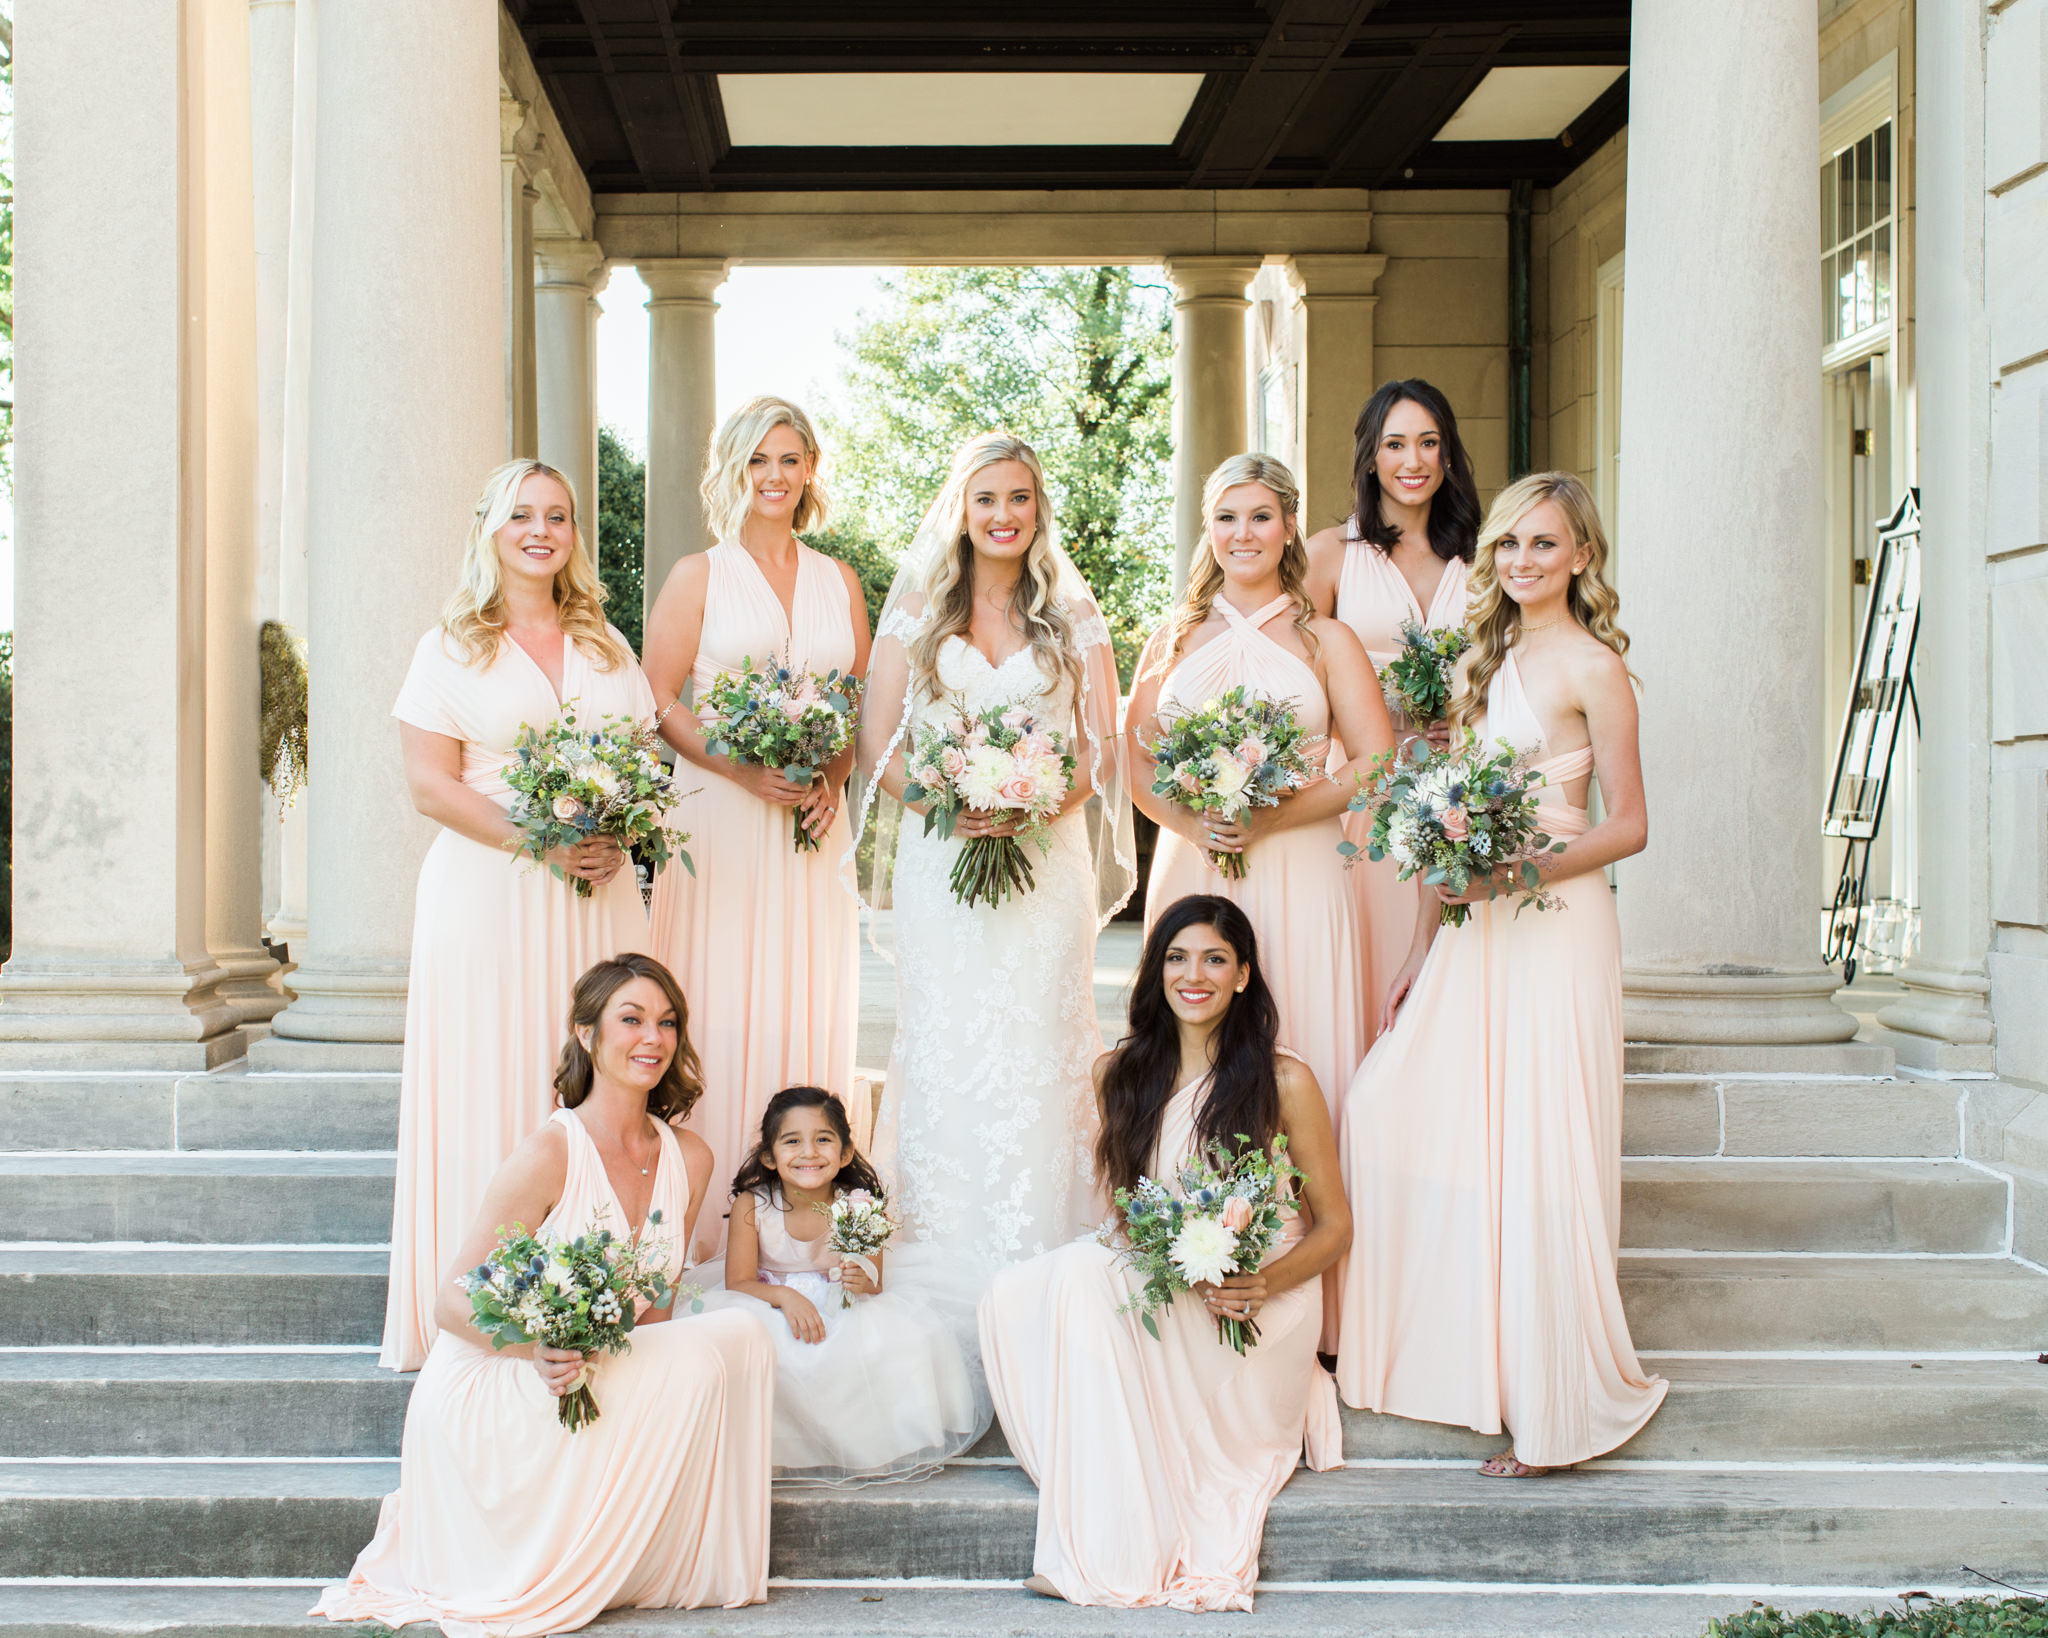 Bridesmaids on steps at Garden Court wedding venue louisville ky